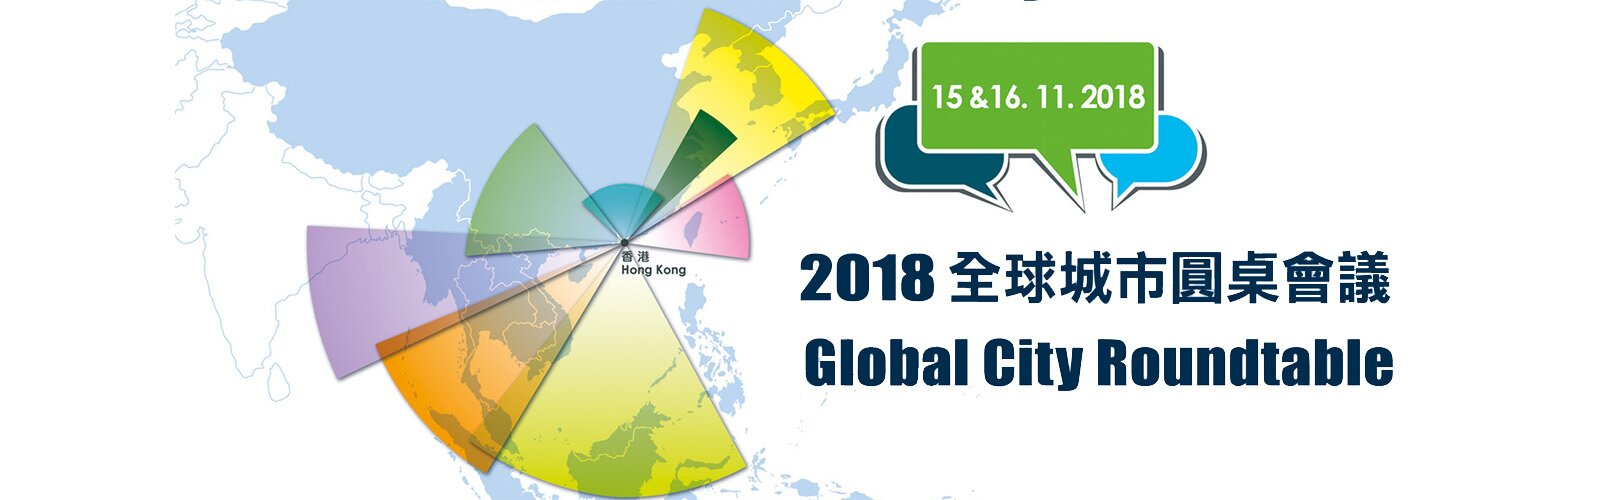 2018 Global City Roundtable